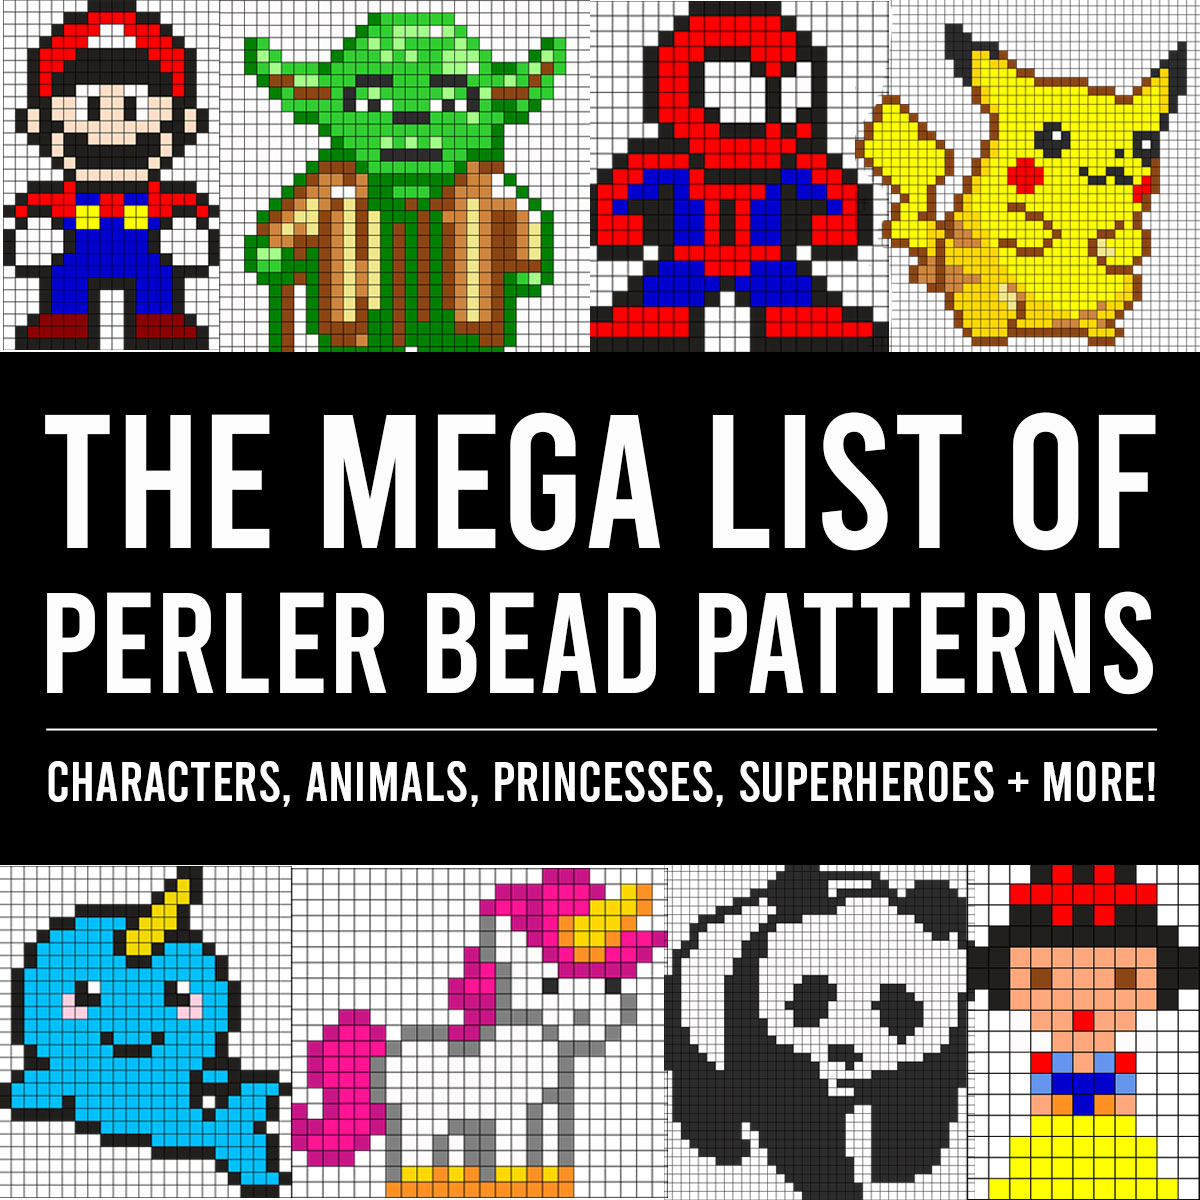 The MEGA list of Perler bead patterns